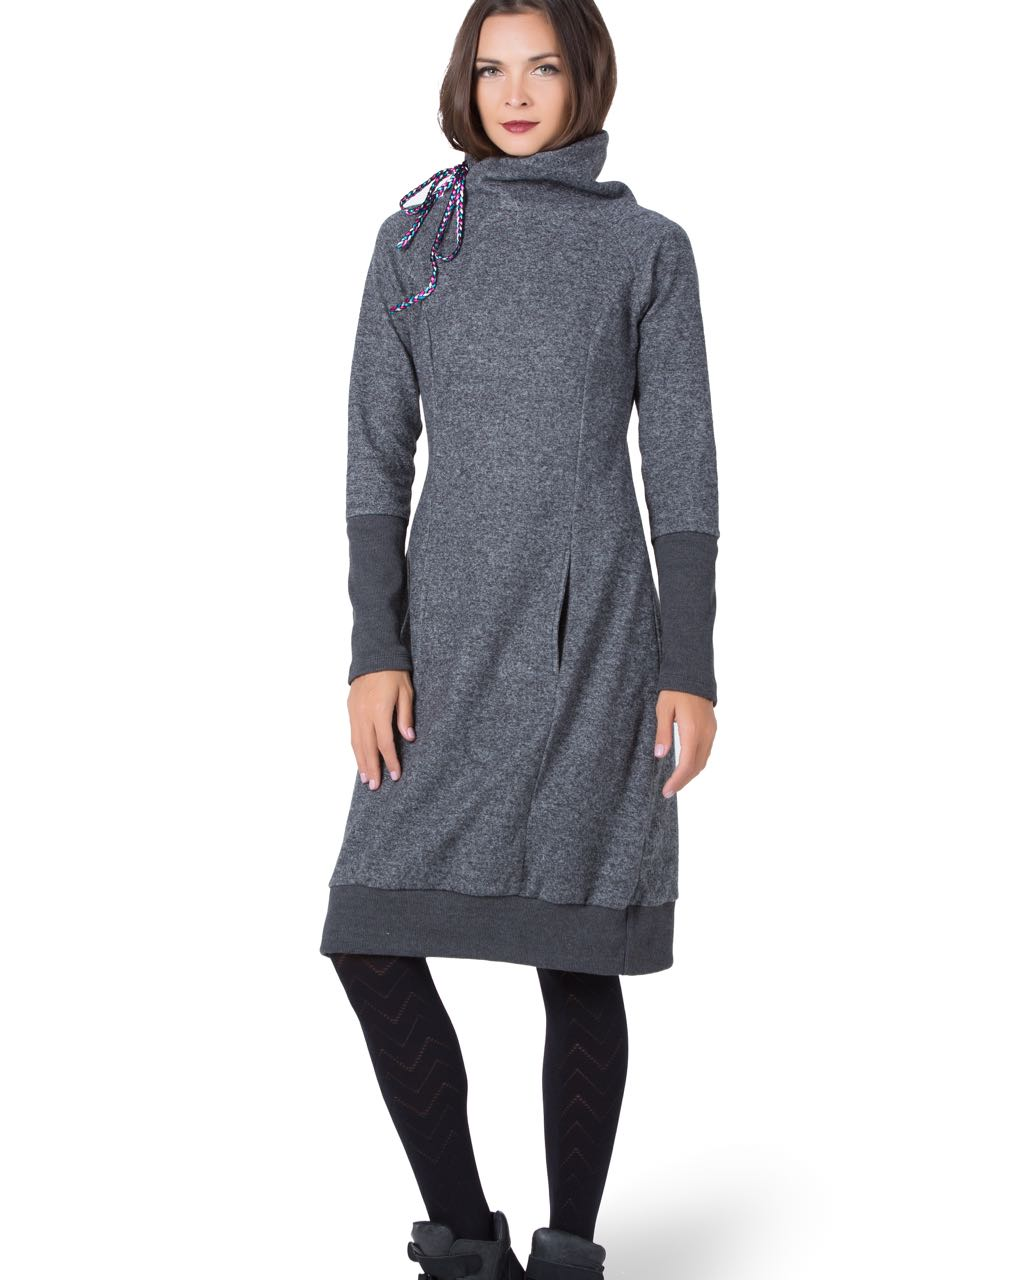 Turbowear Grey Fall Dress Avignon